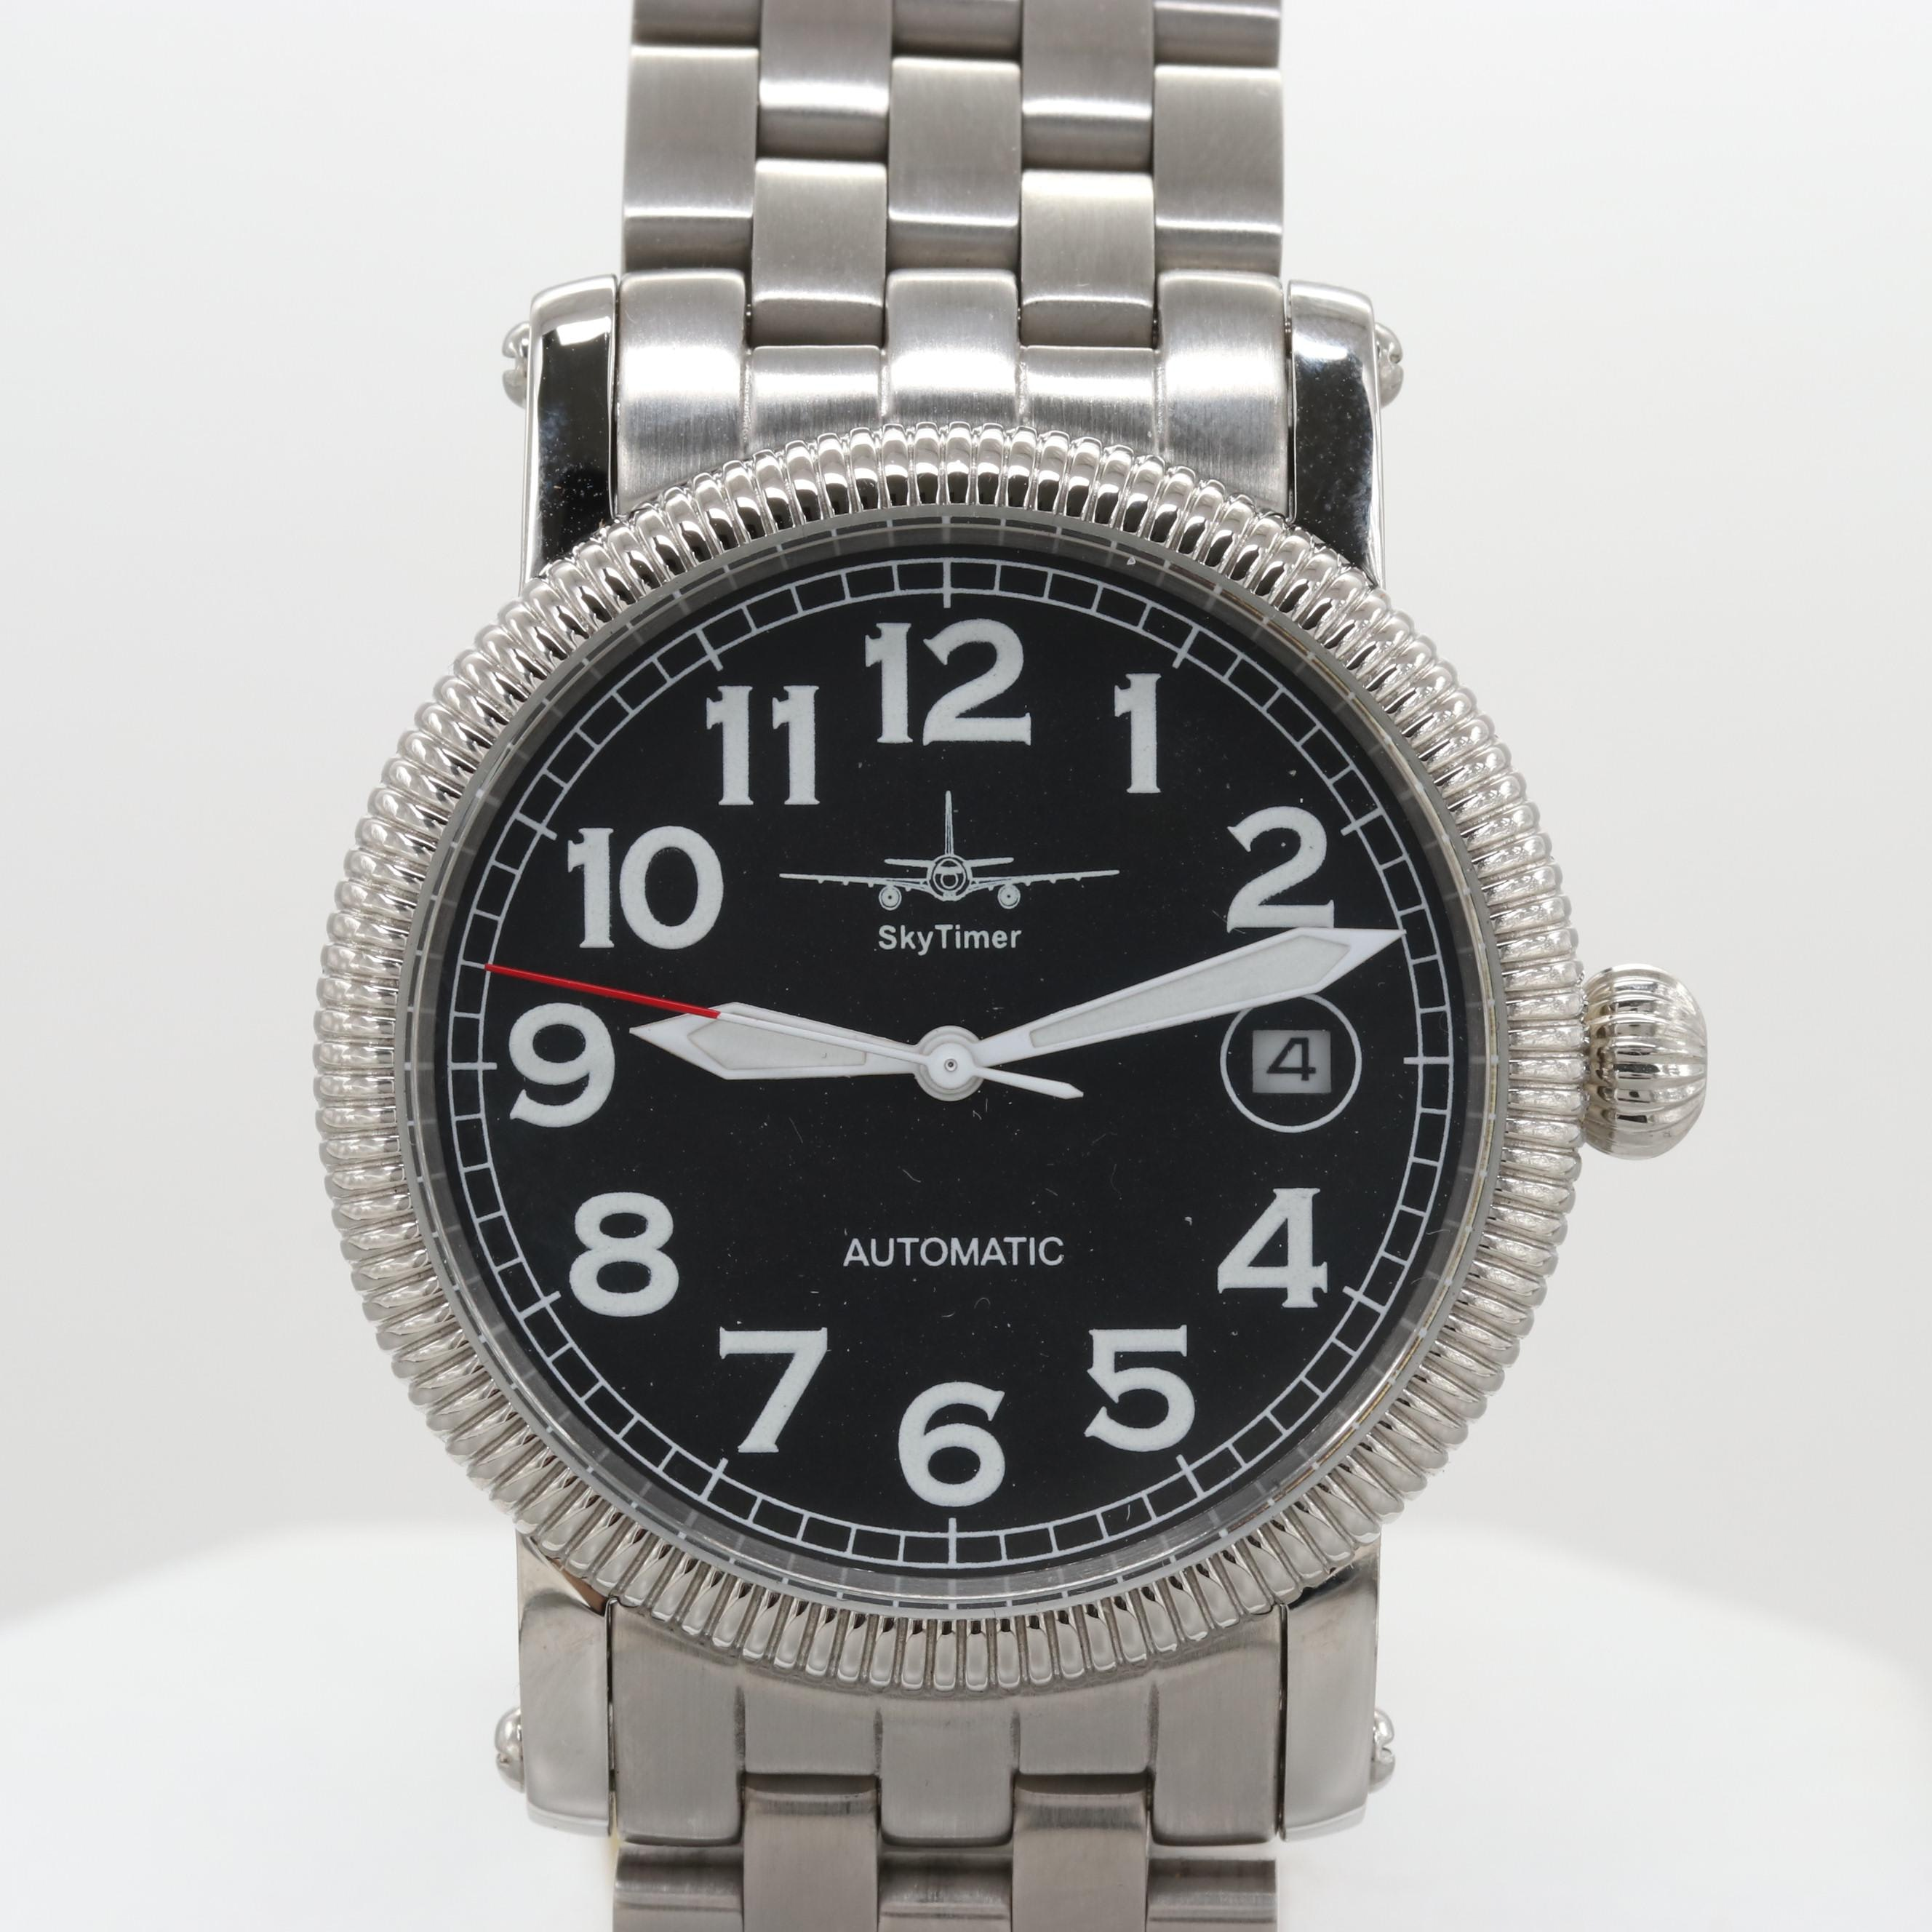 Skytime Stainless Steel Automatic Wristwatch With Date Window